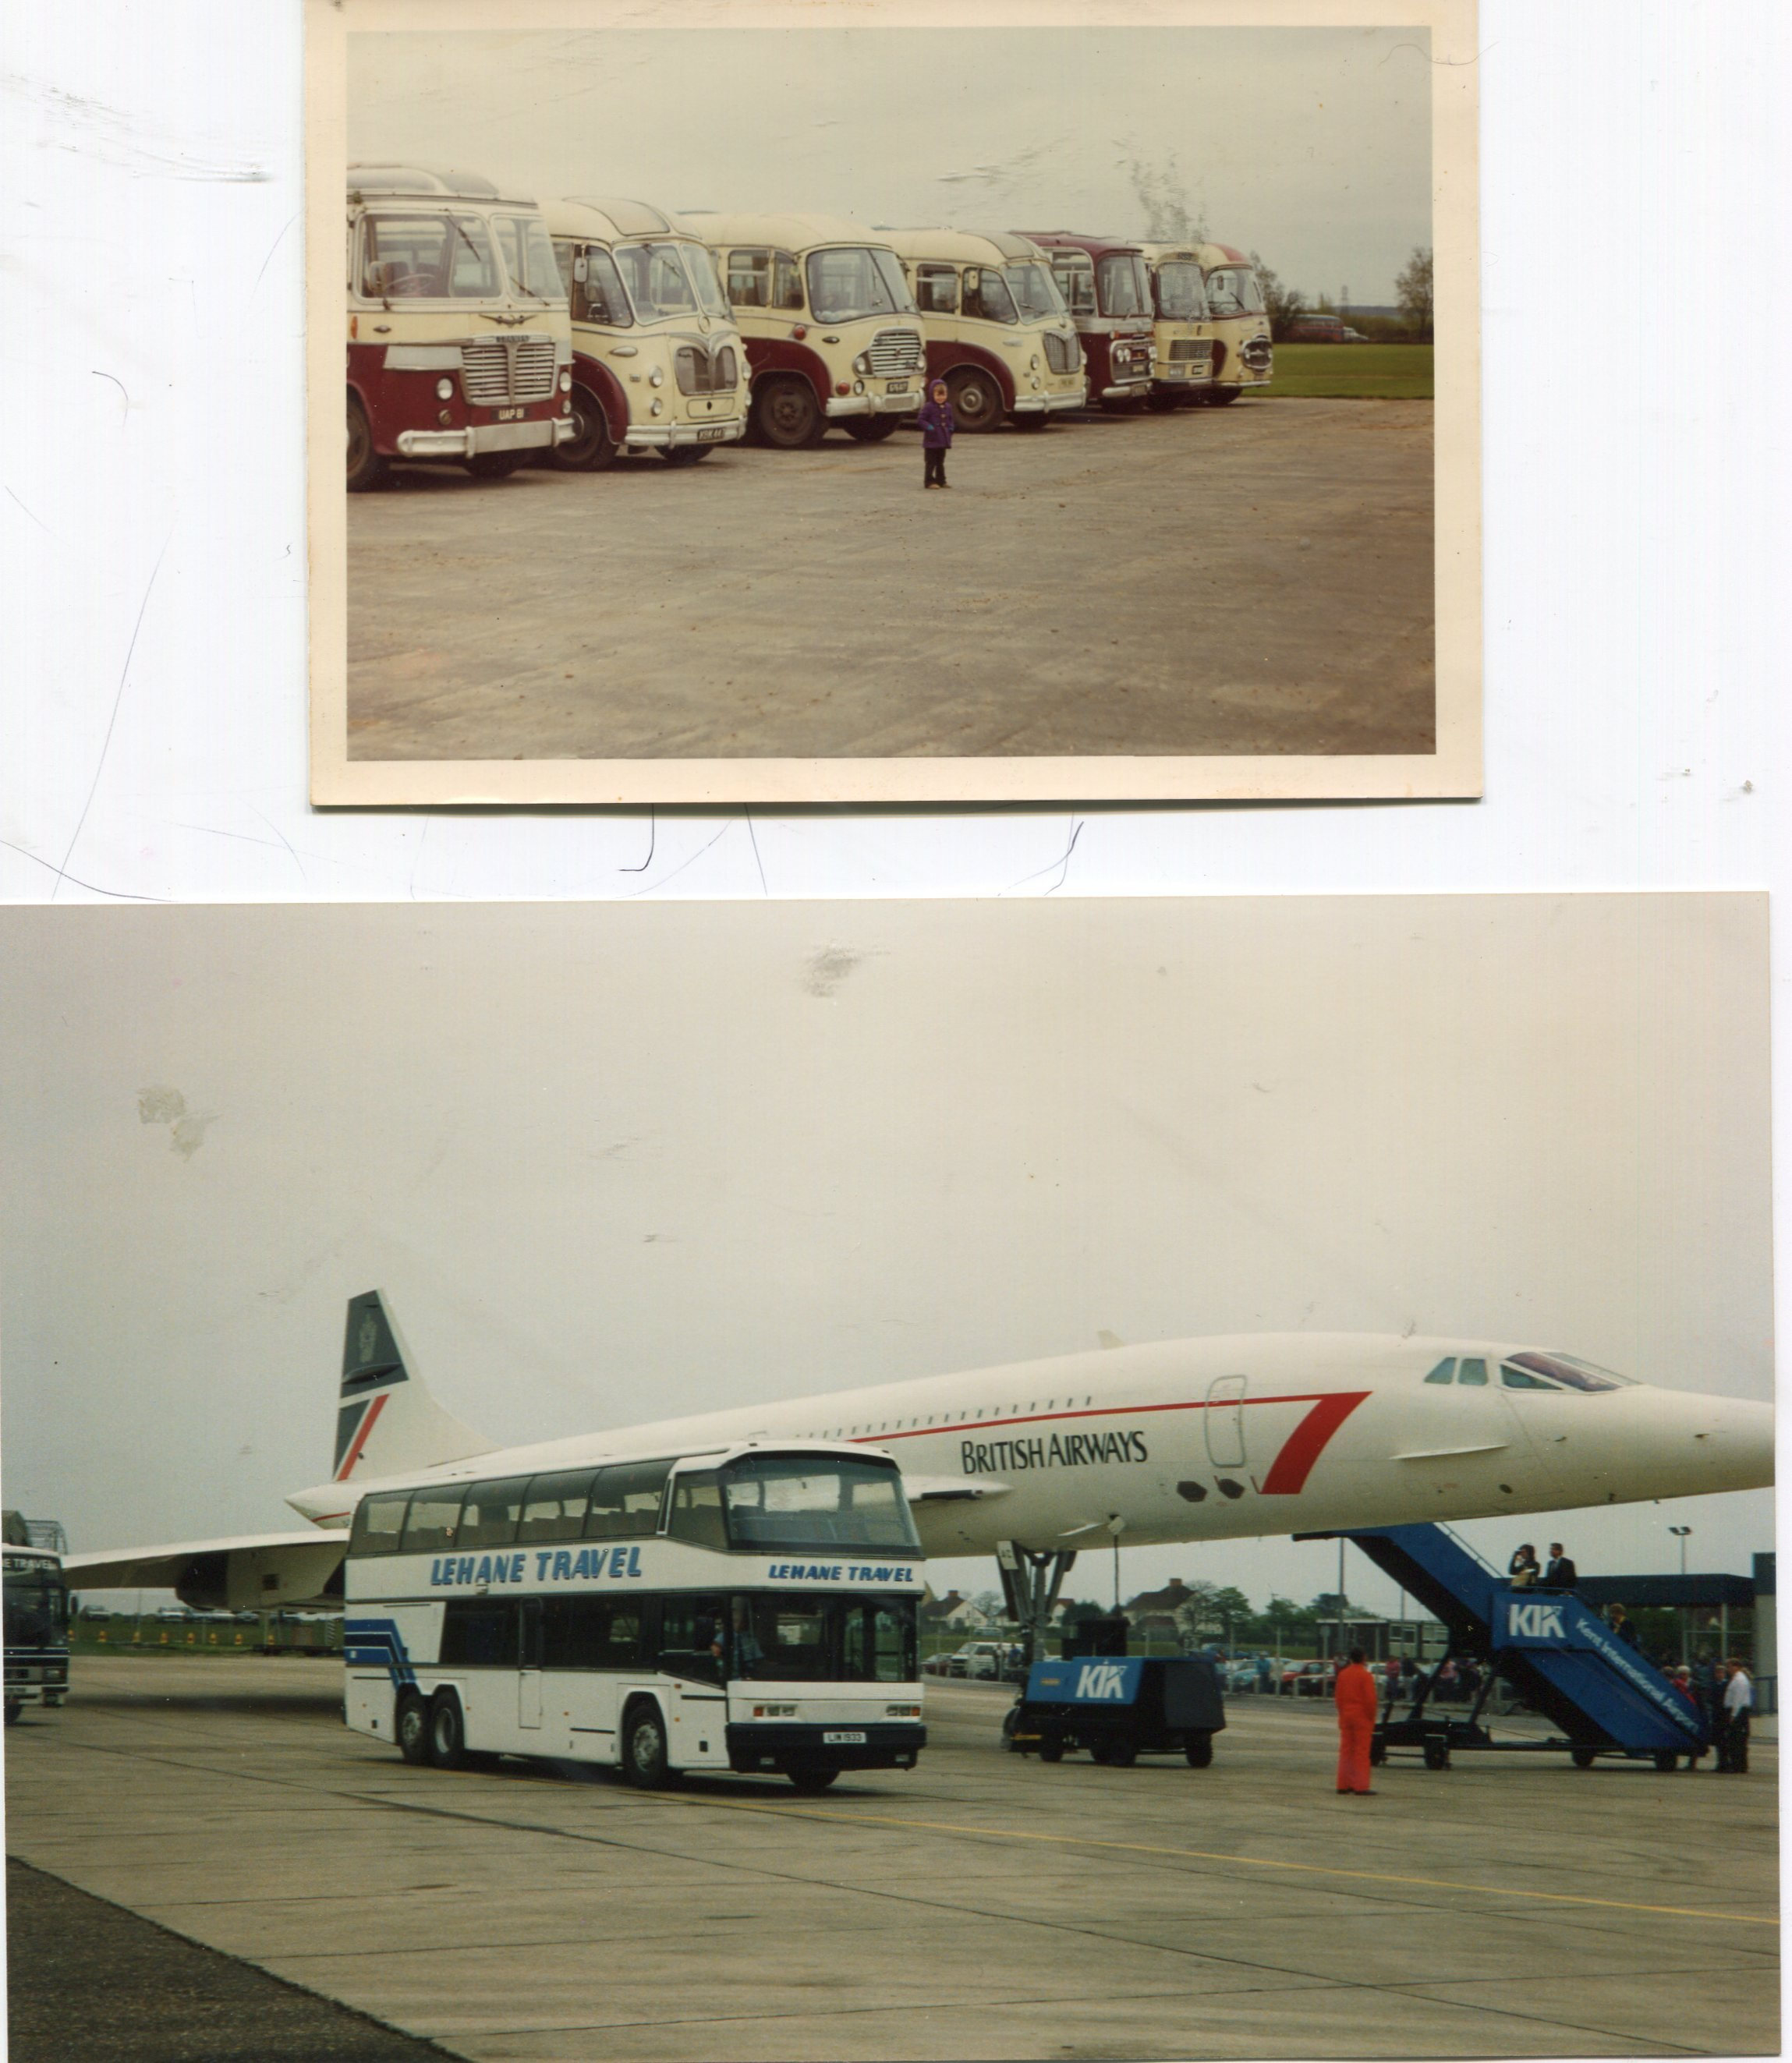 buses and flight